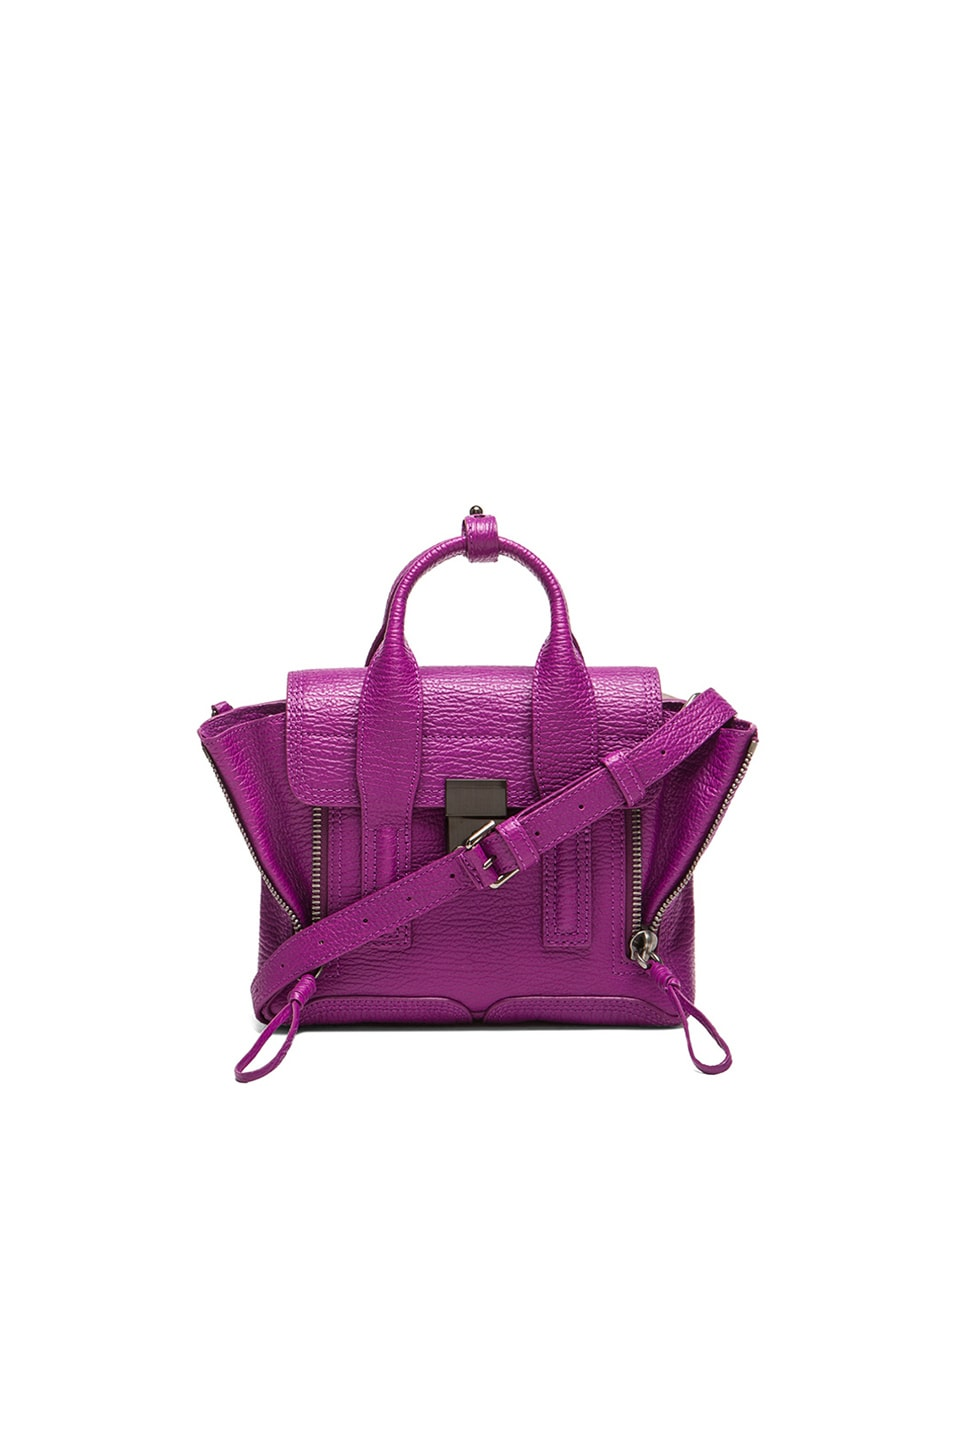 Image 1 of 3.1 phillip lim Mini Pashli Satchel in Orchid